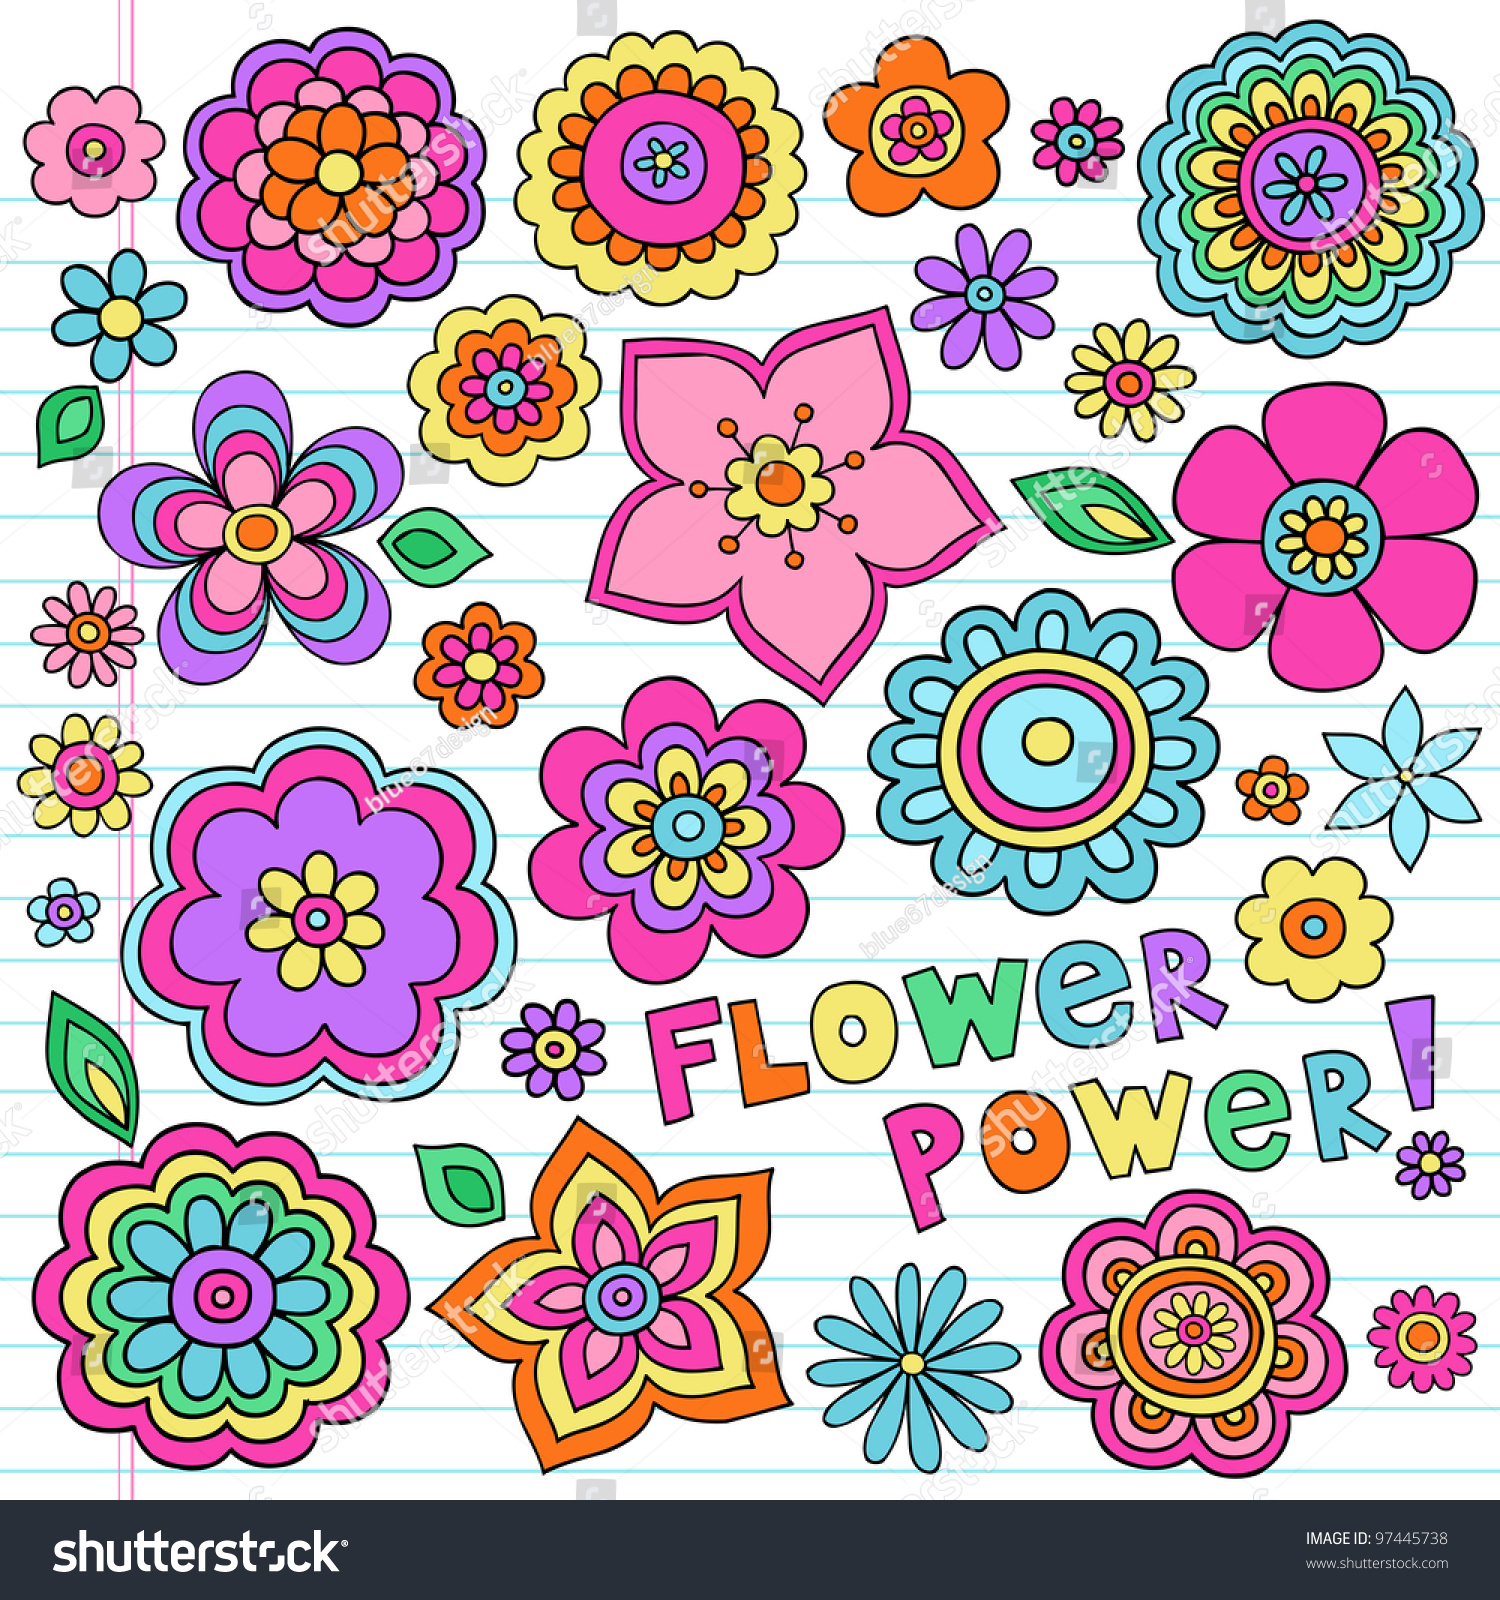 flower power flowers groovy psychedelic hand stock vector 97445738 shutterstock. Black Bedroom Furniture Sets. Home Design Ideas